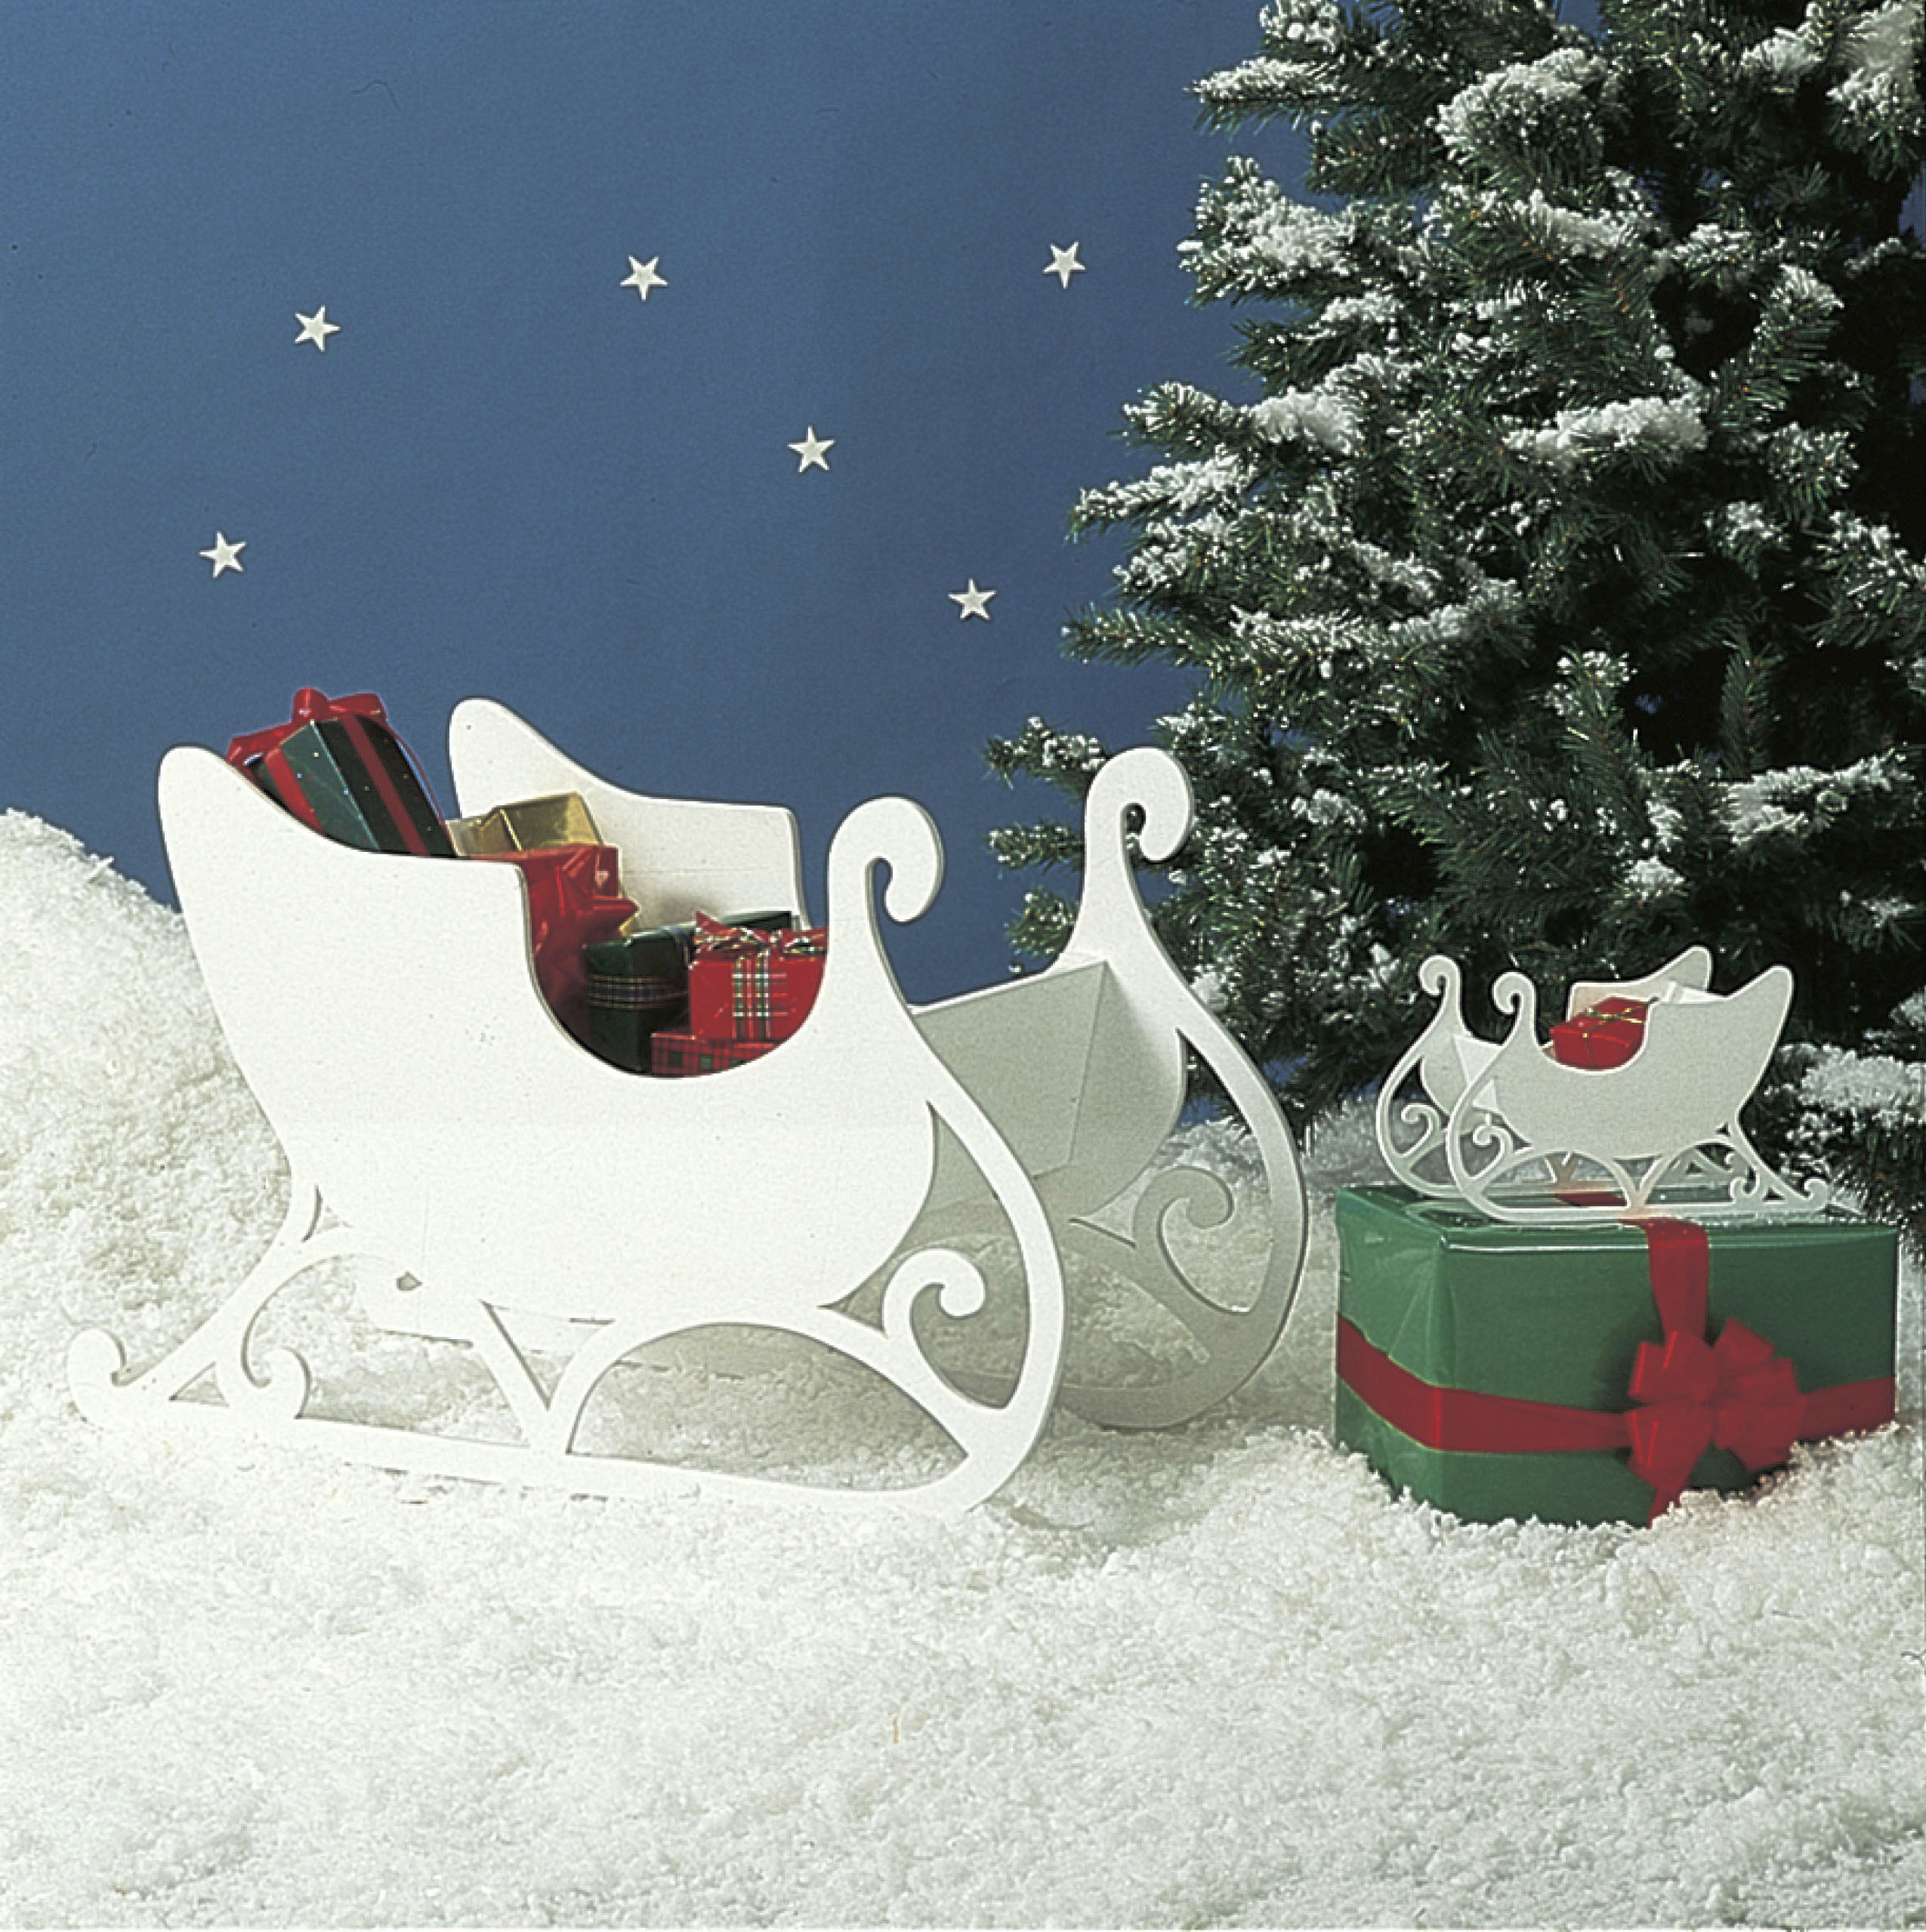 Medium & Small Sleigh : Large-format Paper Woodworking Plan